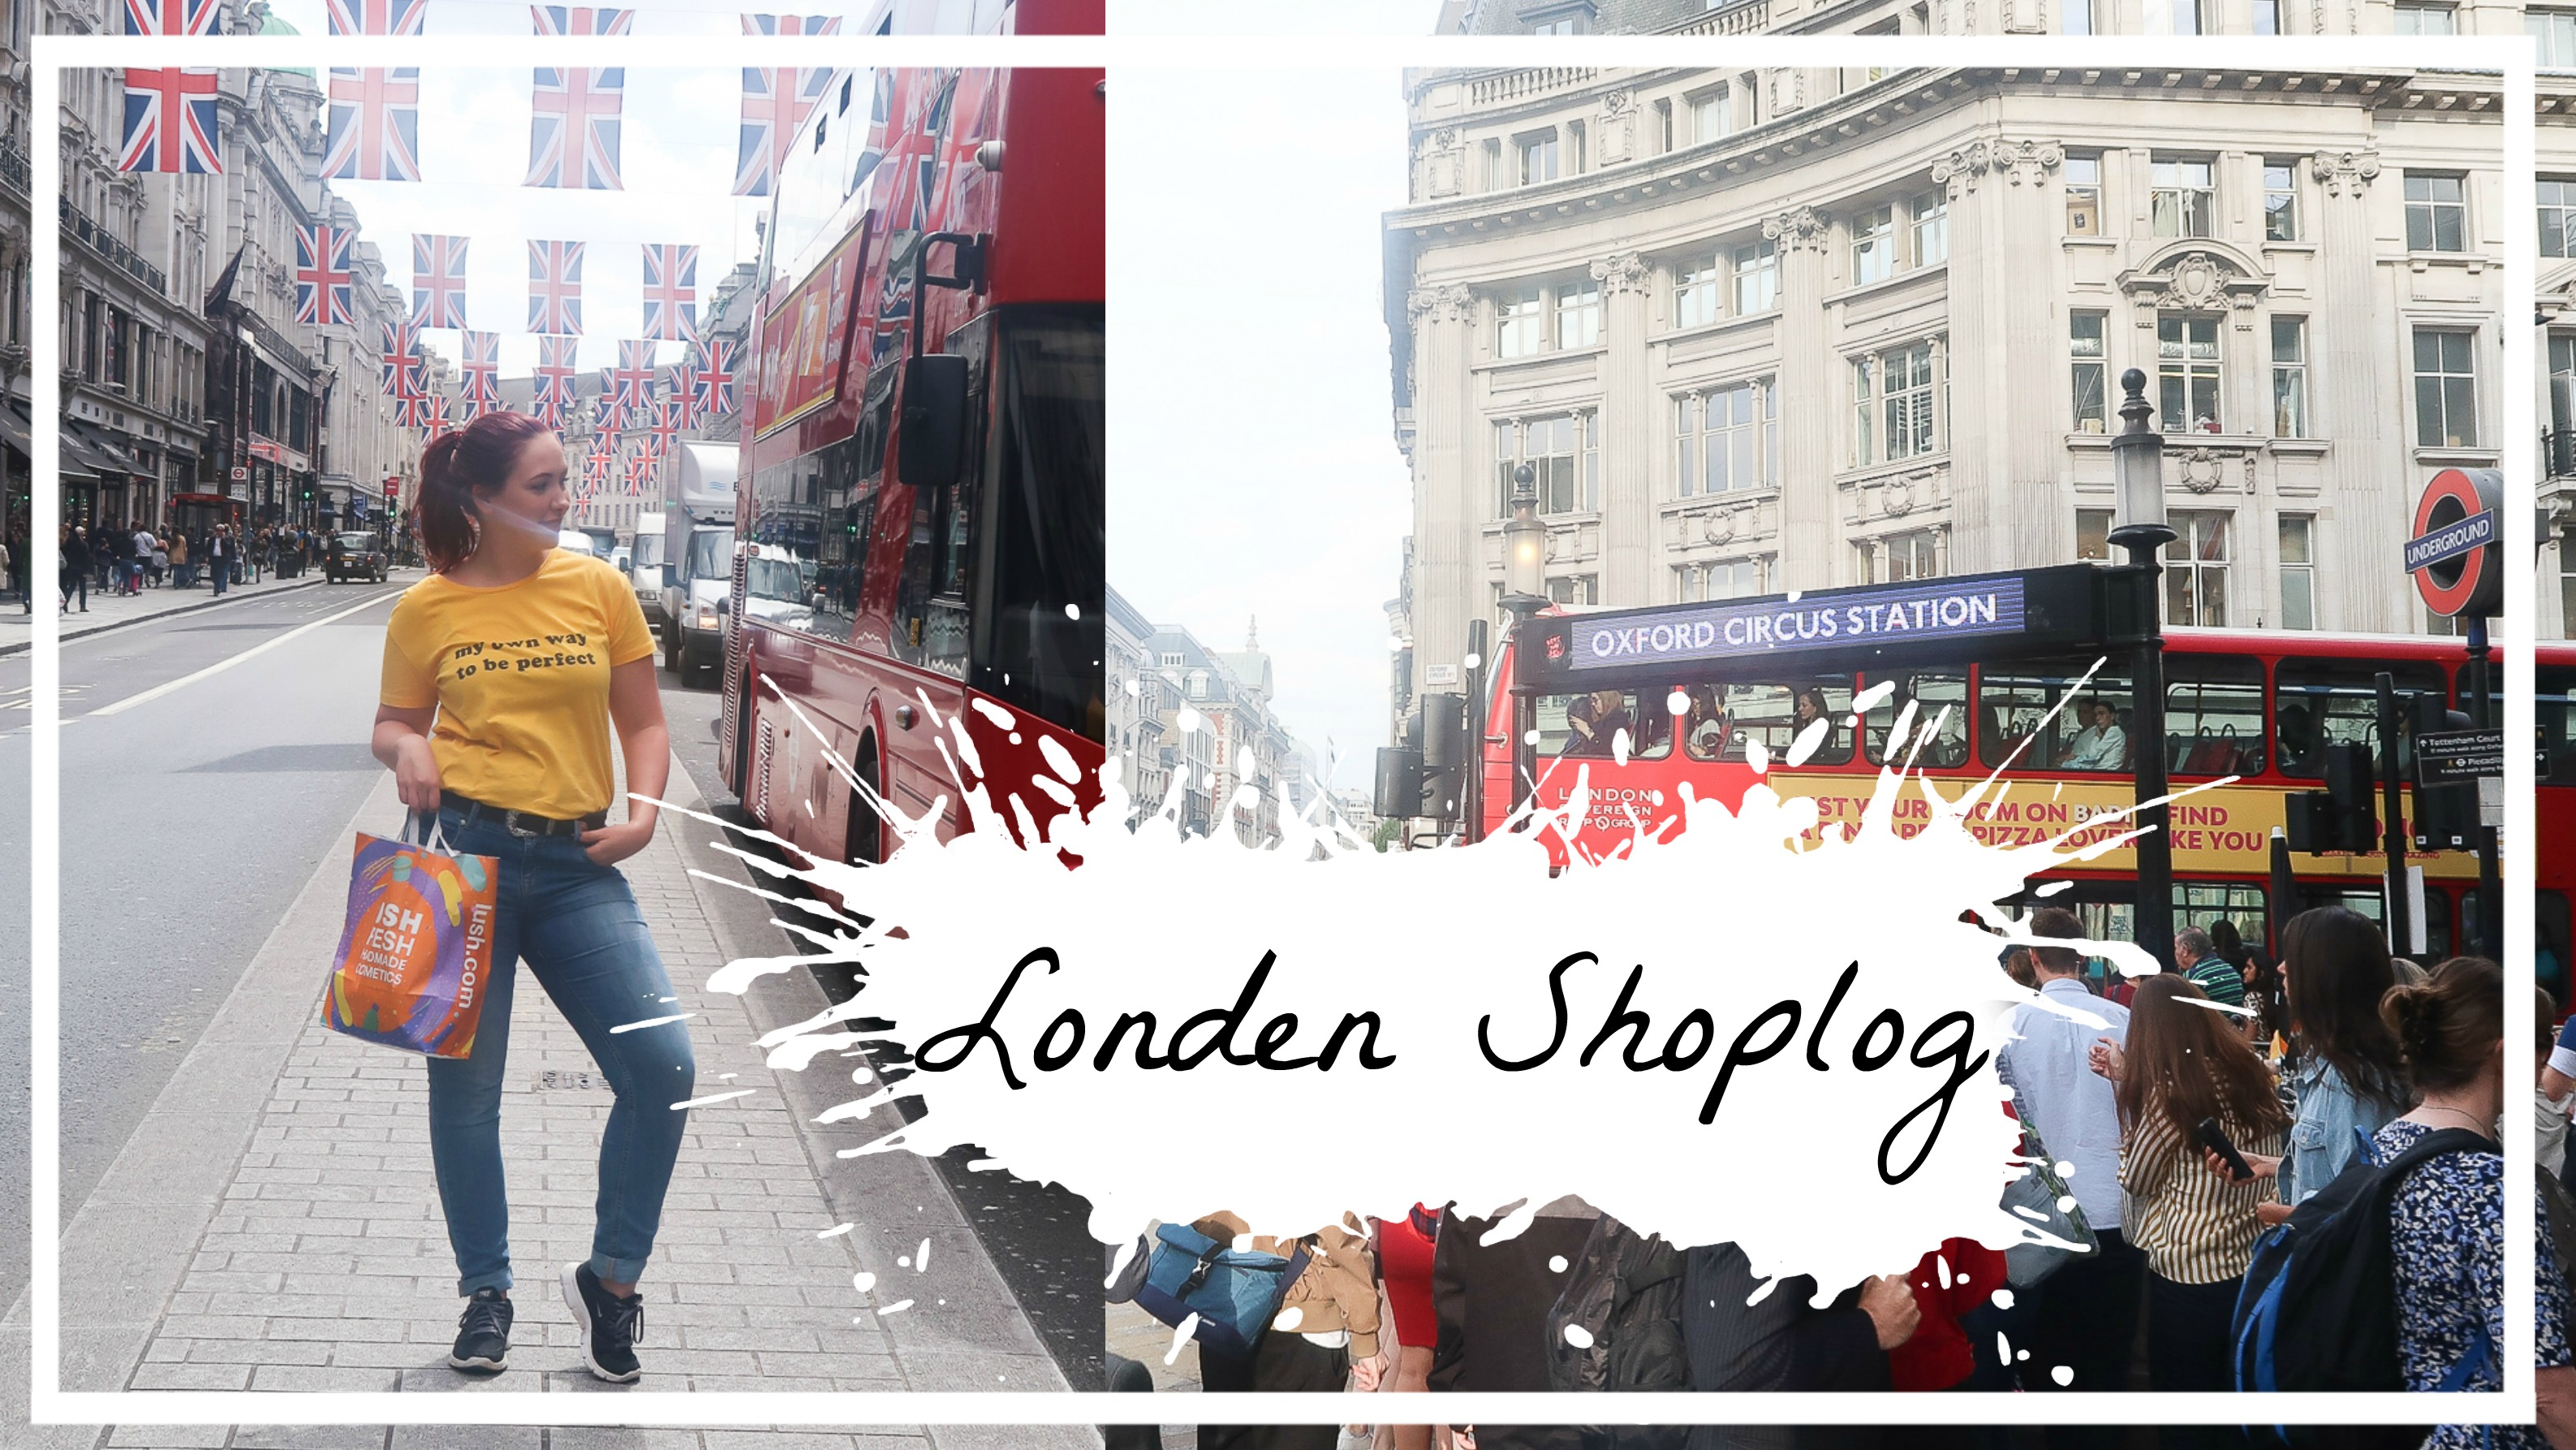 Londen pashokjes shoplog met o.a. New Look & Urban Outfitters